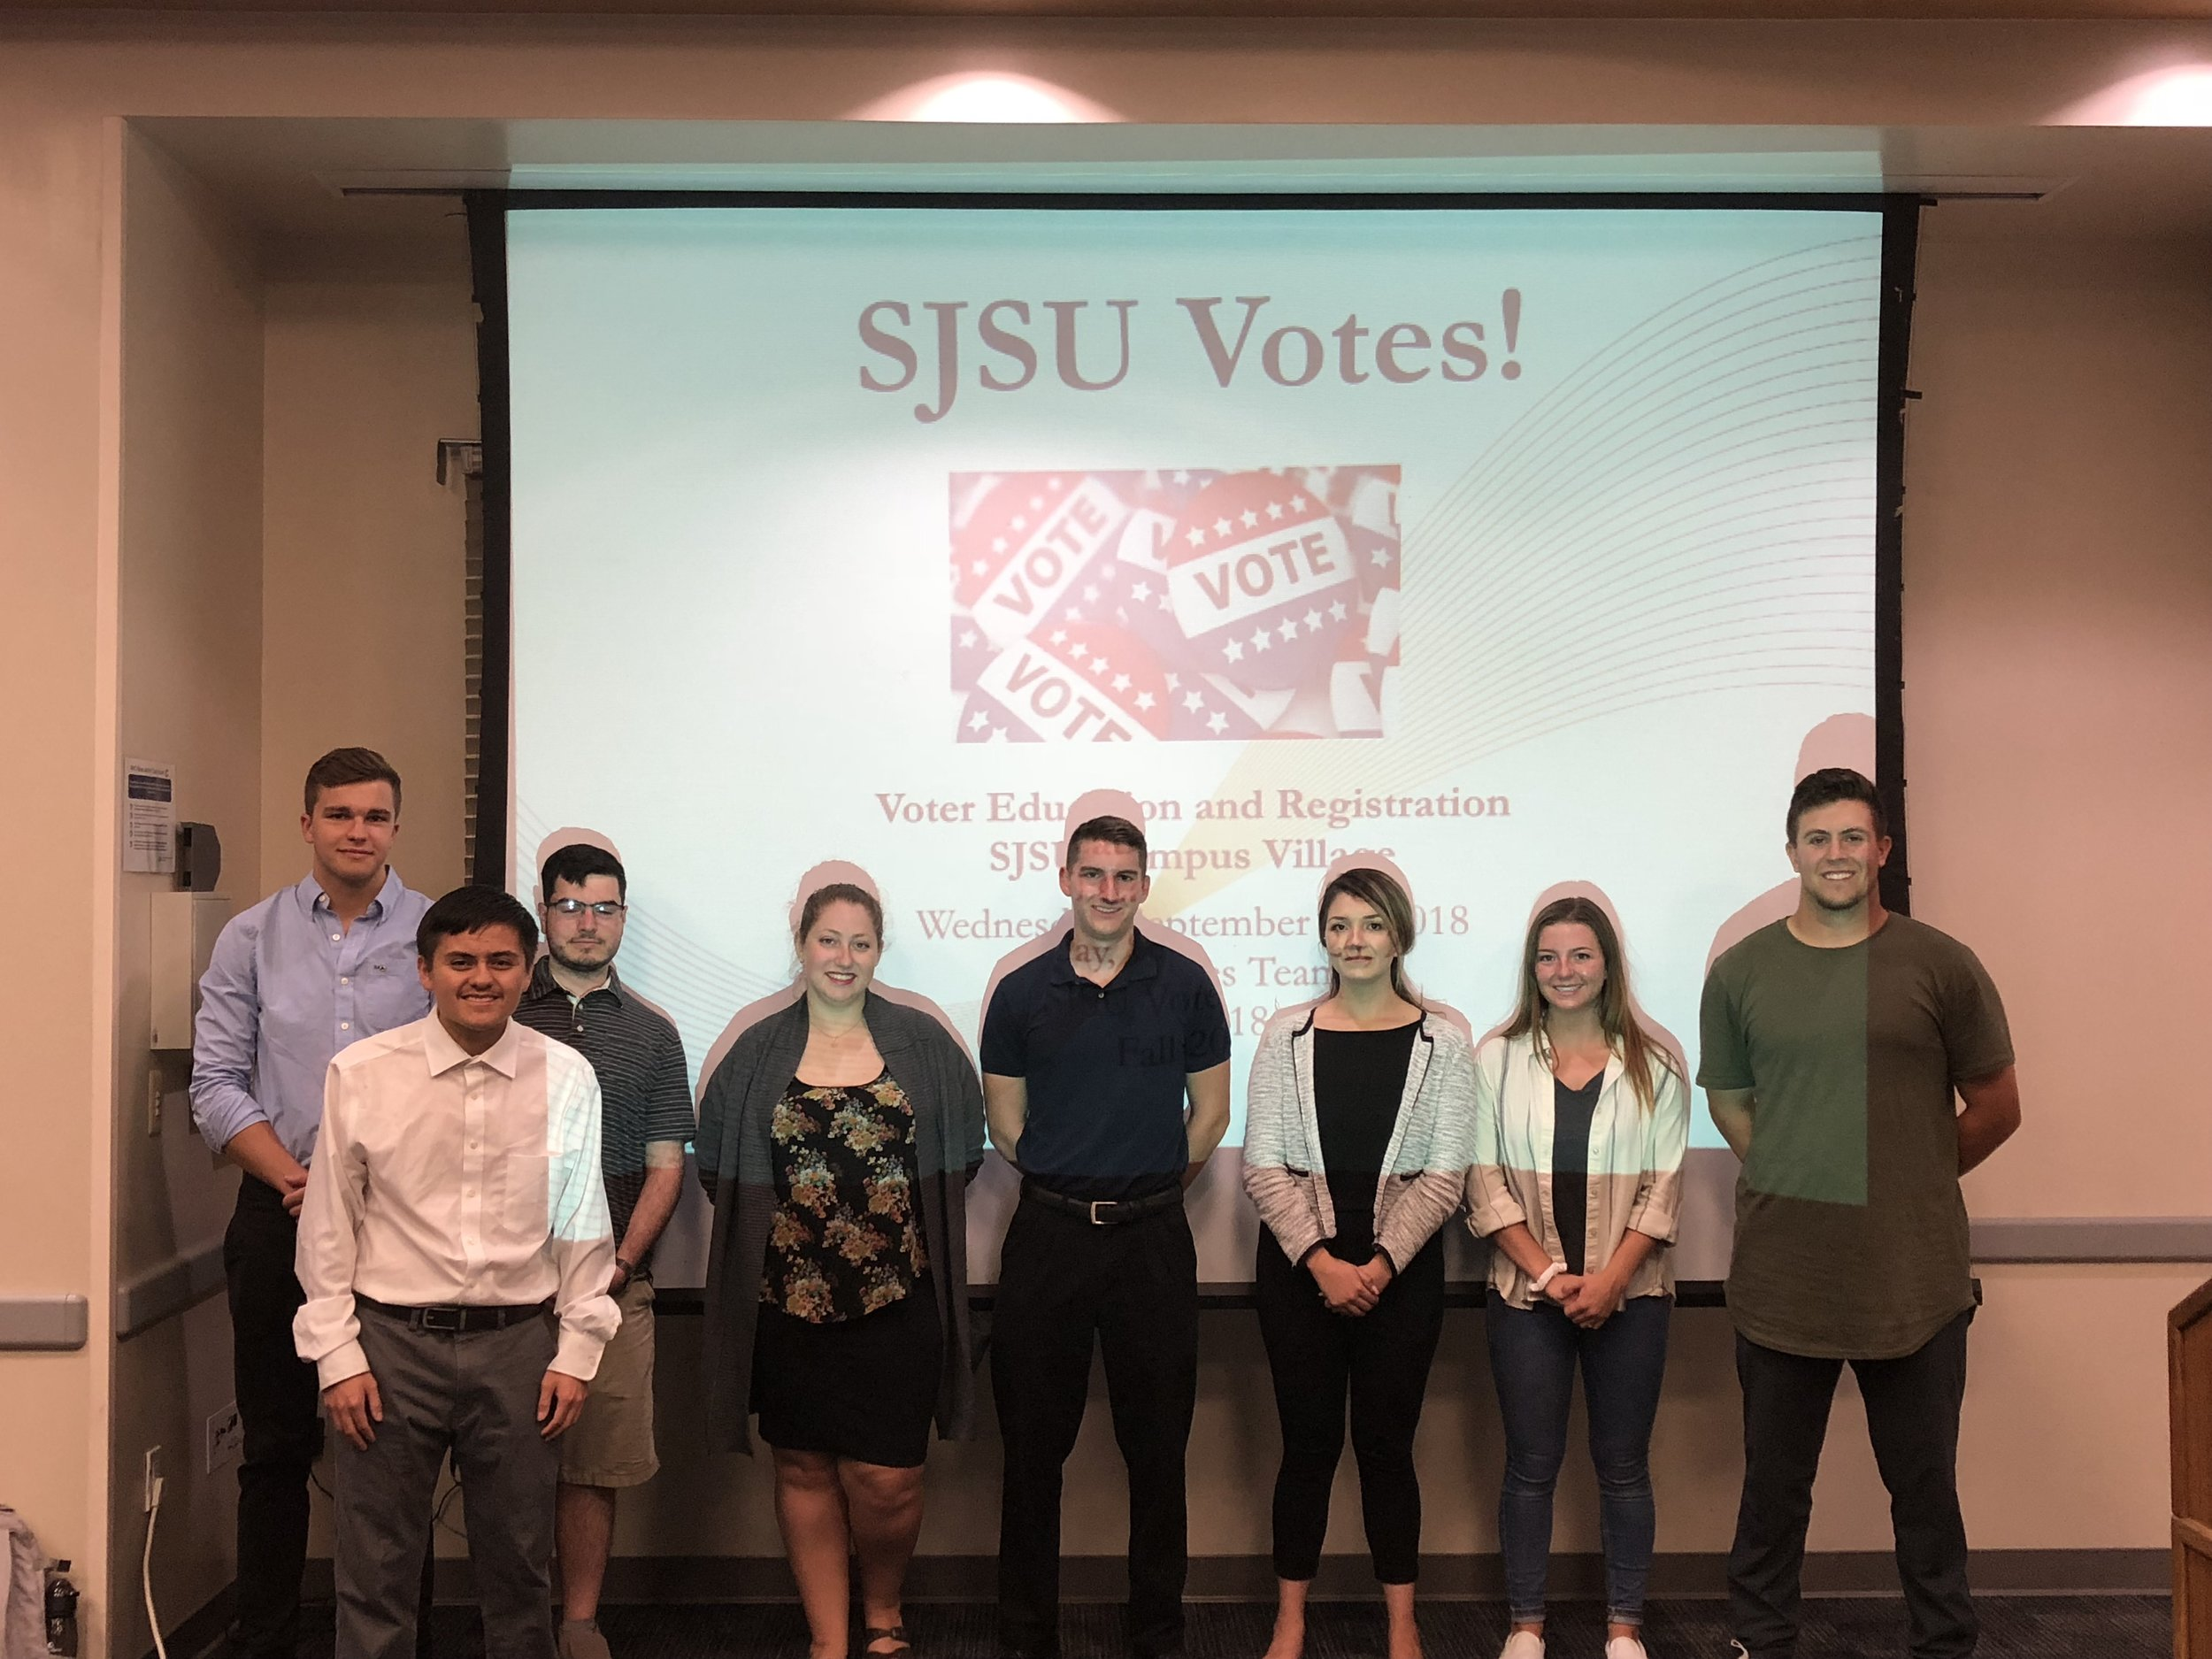 SJSU Votes! Presentation Team at Campus Village 9/26/18  Ed, Shuan, Albert, Miriam, Anthony, Deysi, Kalie, Travis, and Mary (not pictured)